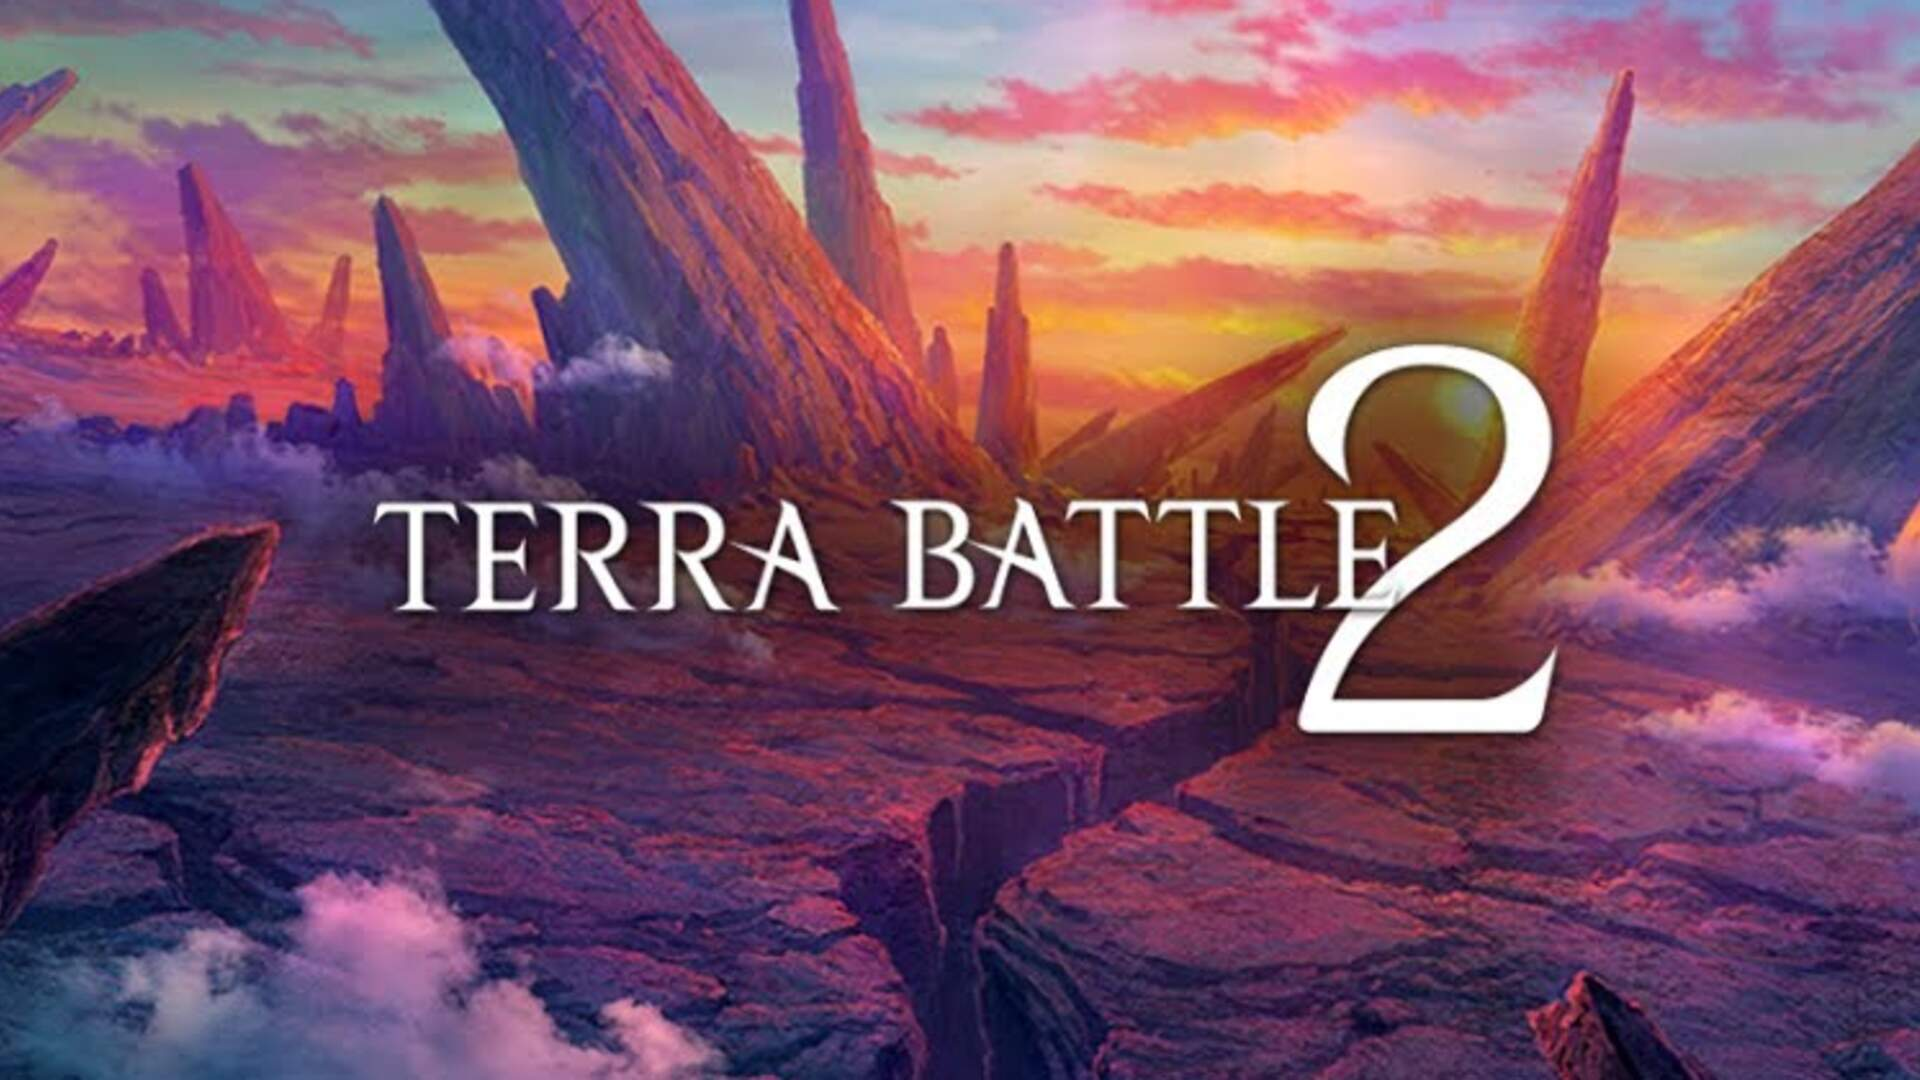 Final Fantasy Creator is Developing Terra Battle 2, Announces a Spinoff